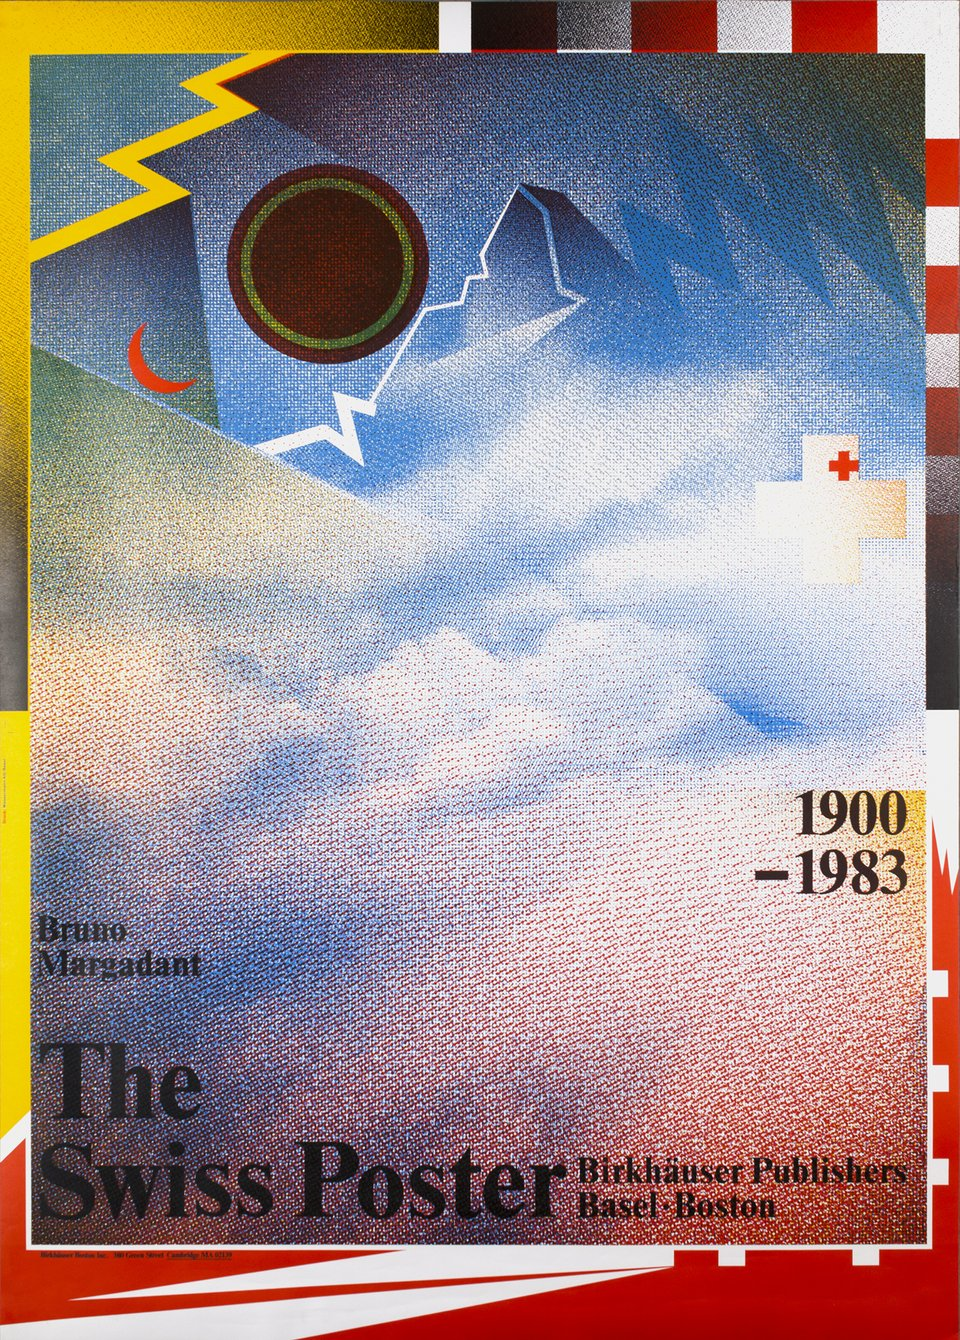 The Swiss Poster, Birkhäuser Publishers Basel - Boston – Vintage poster – Wolfgang WEINGART – 1983